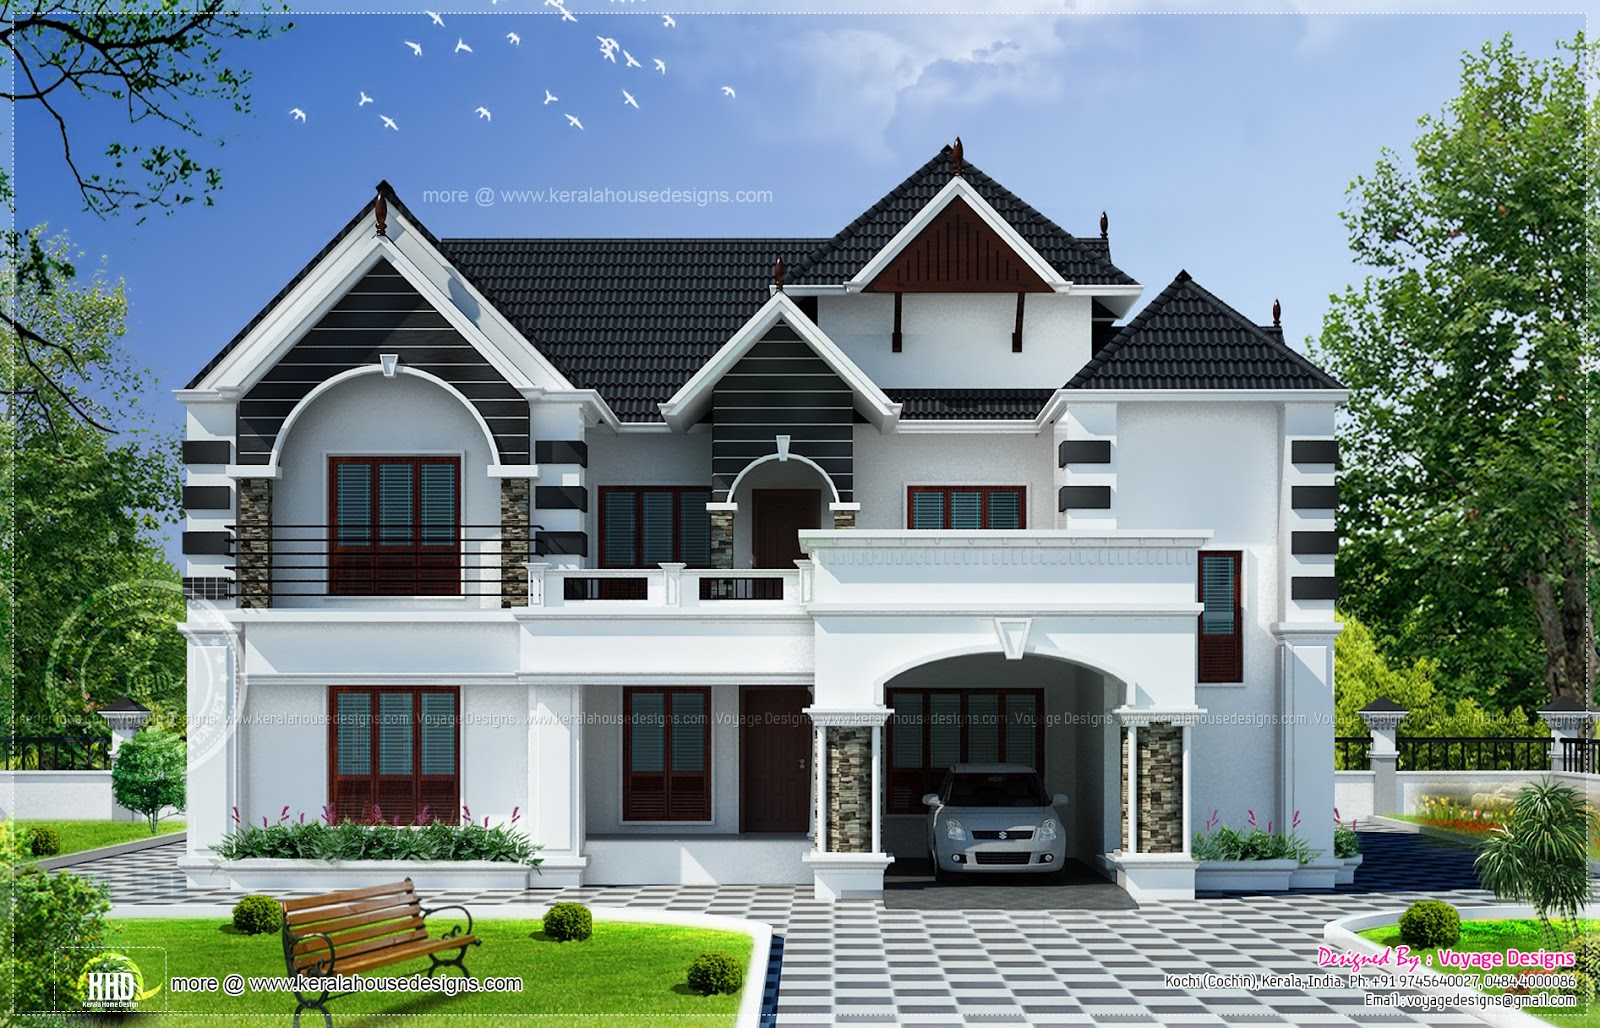 4 bedroom colonial style house kerala home design and for Most popular house styles